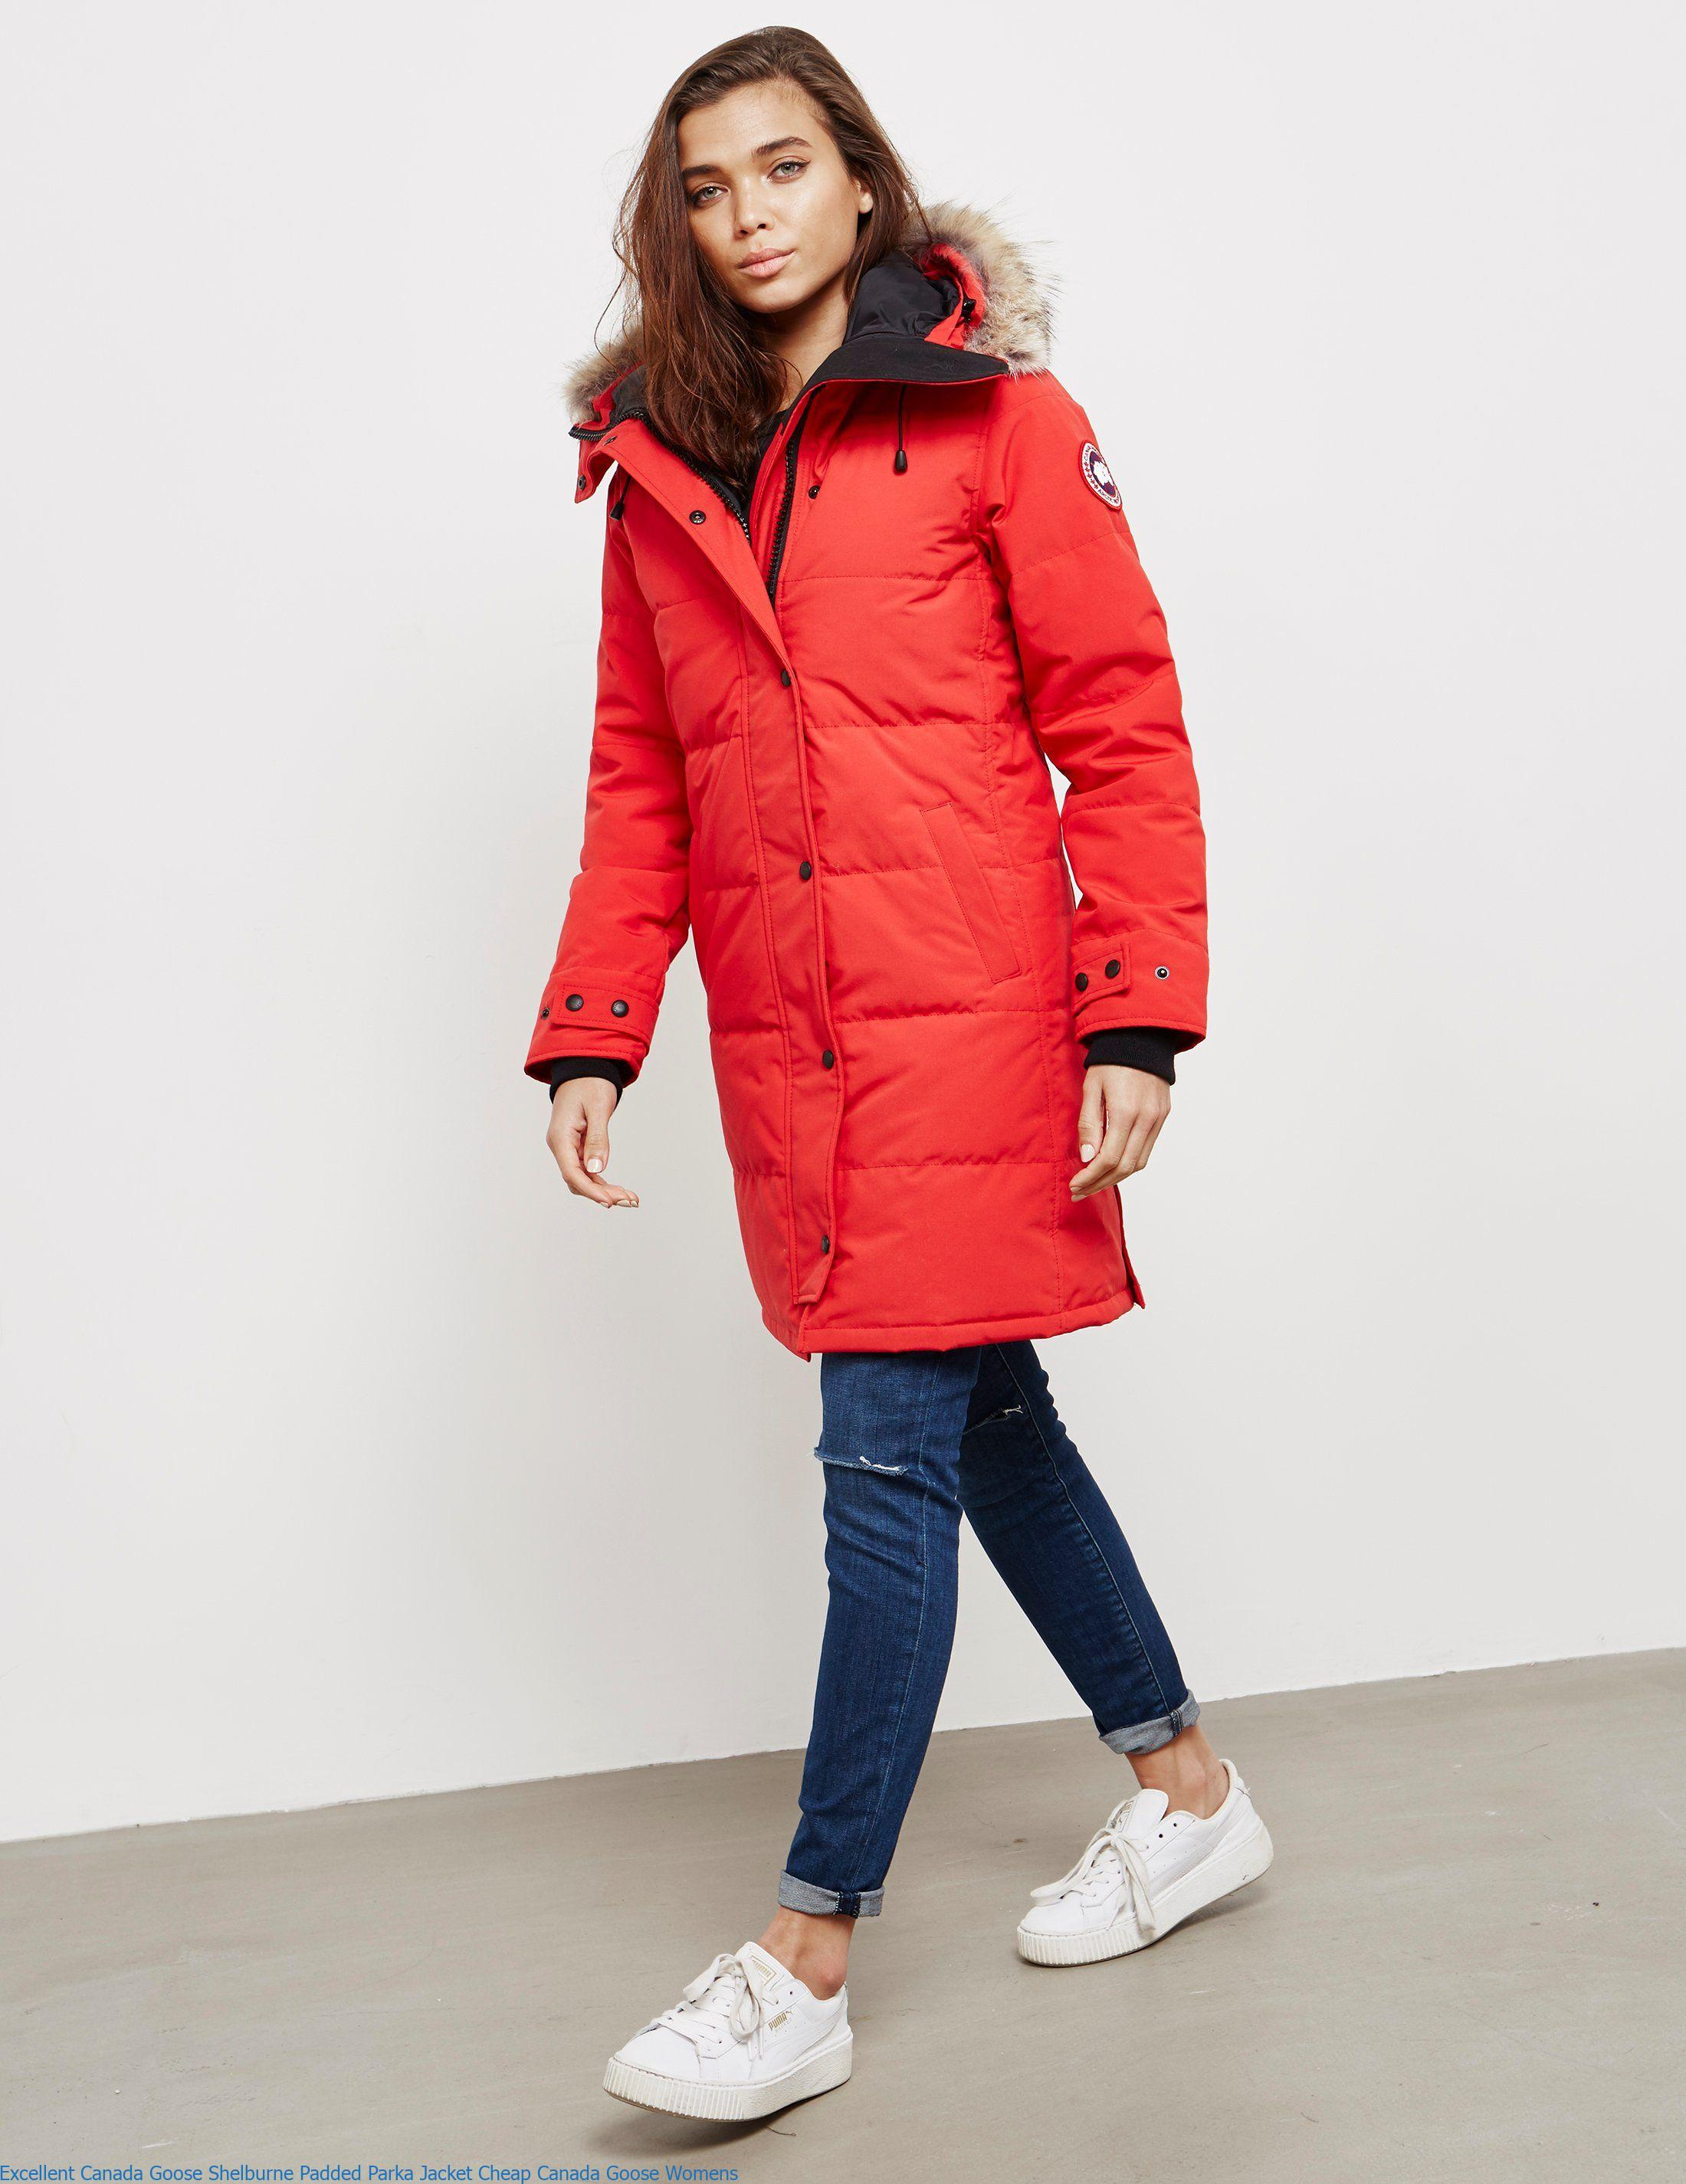 2992662bafc2 Excellent Canada Goose Shelburne Padded Parka Jacket Cheap Canada Goose  Womens – Canada Goose Sale Outlet Cheap Parka Online Shop